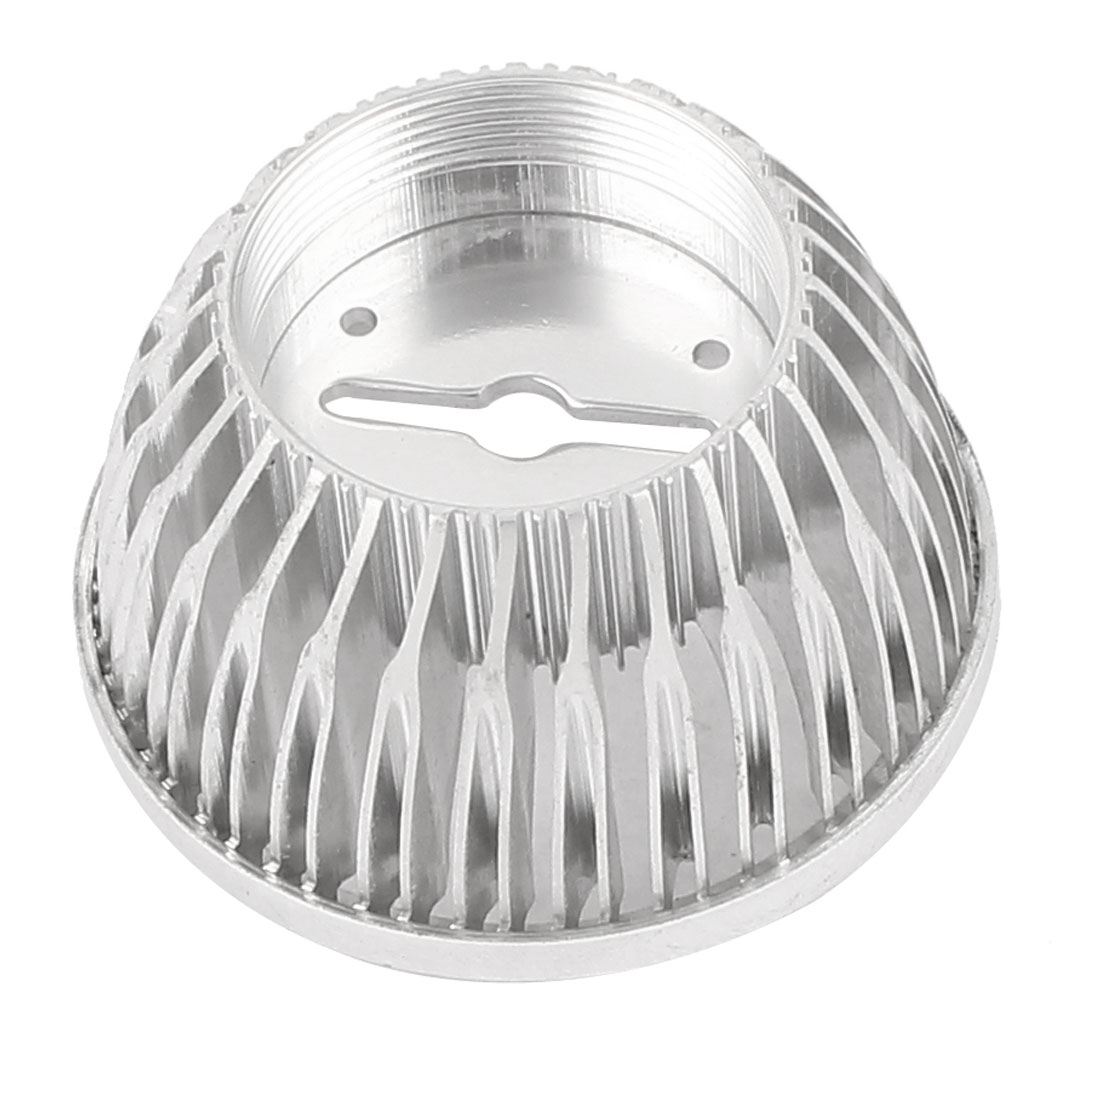 49mm x 27mm 3W High Power LED Lamp Heatsink Aluminium Cooling Fin